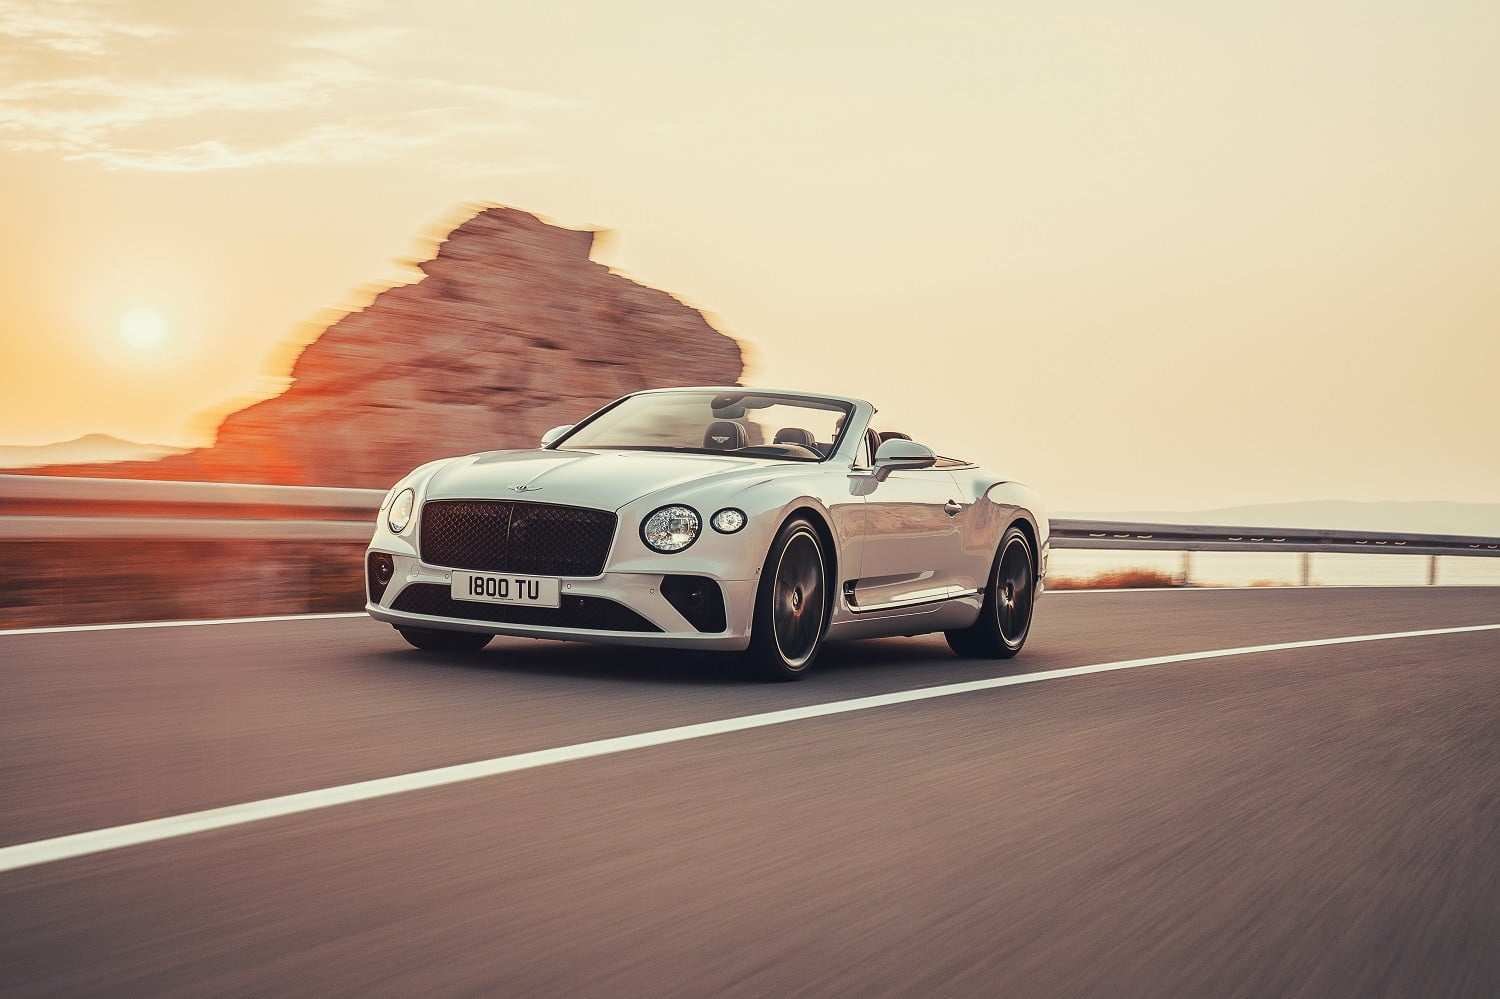 78 Great 2020 Bentley Gt Specs and Review for 2020 Bentley Gt